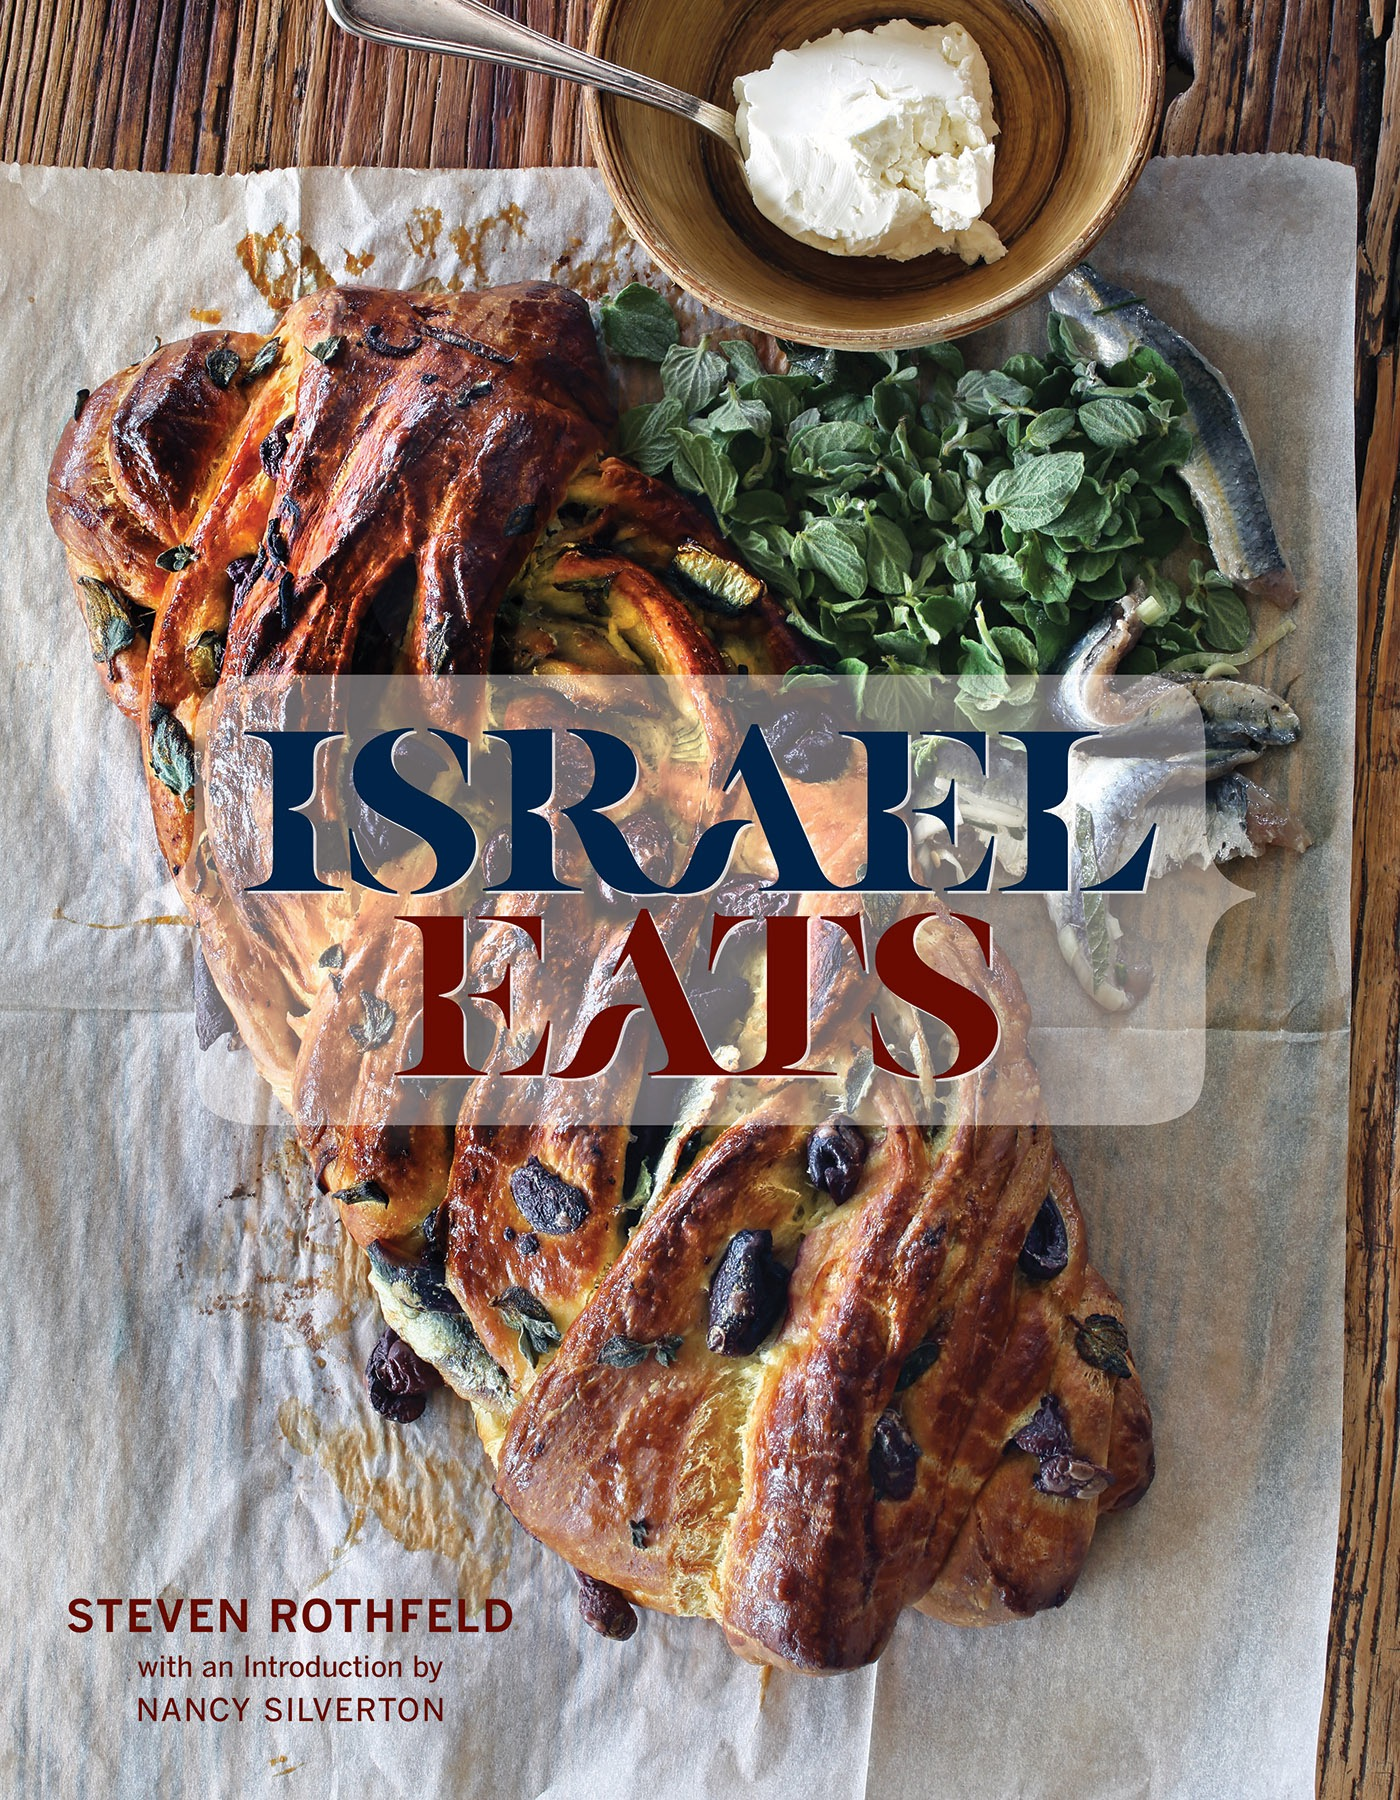 Book review israel eats cool food dude i adoredobsessed over this cookbook so much that i hesitated to write about it you know that feeling when you encounter something or someone so great forumfinder Image collections